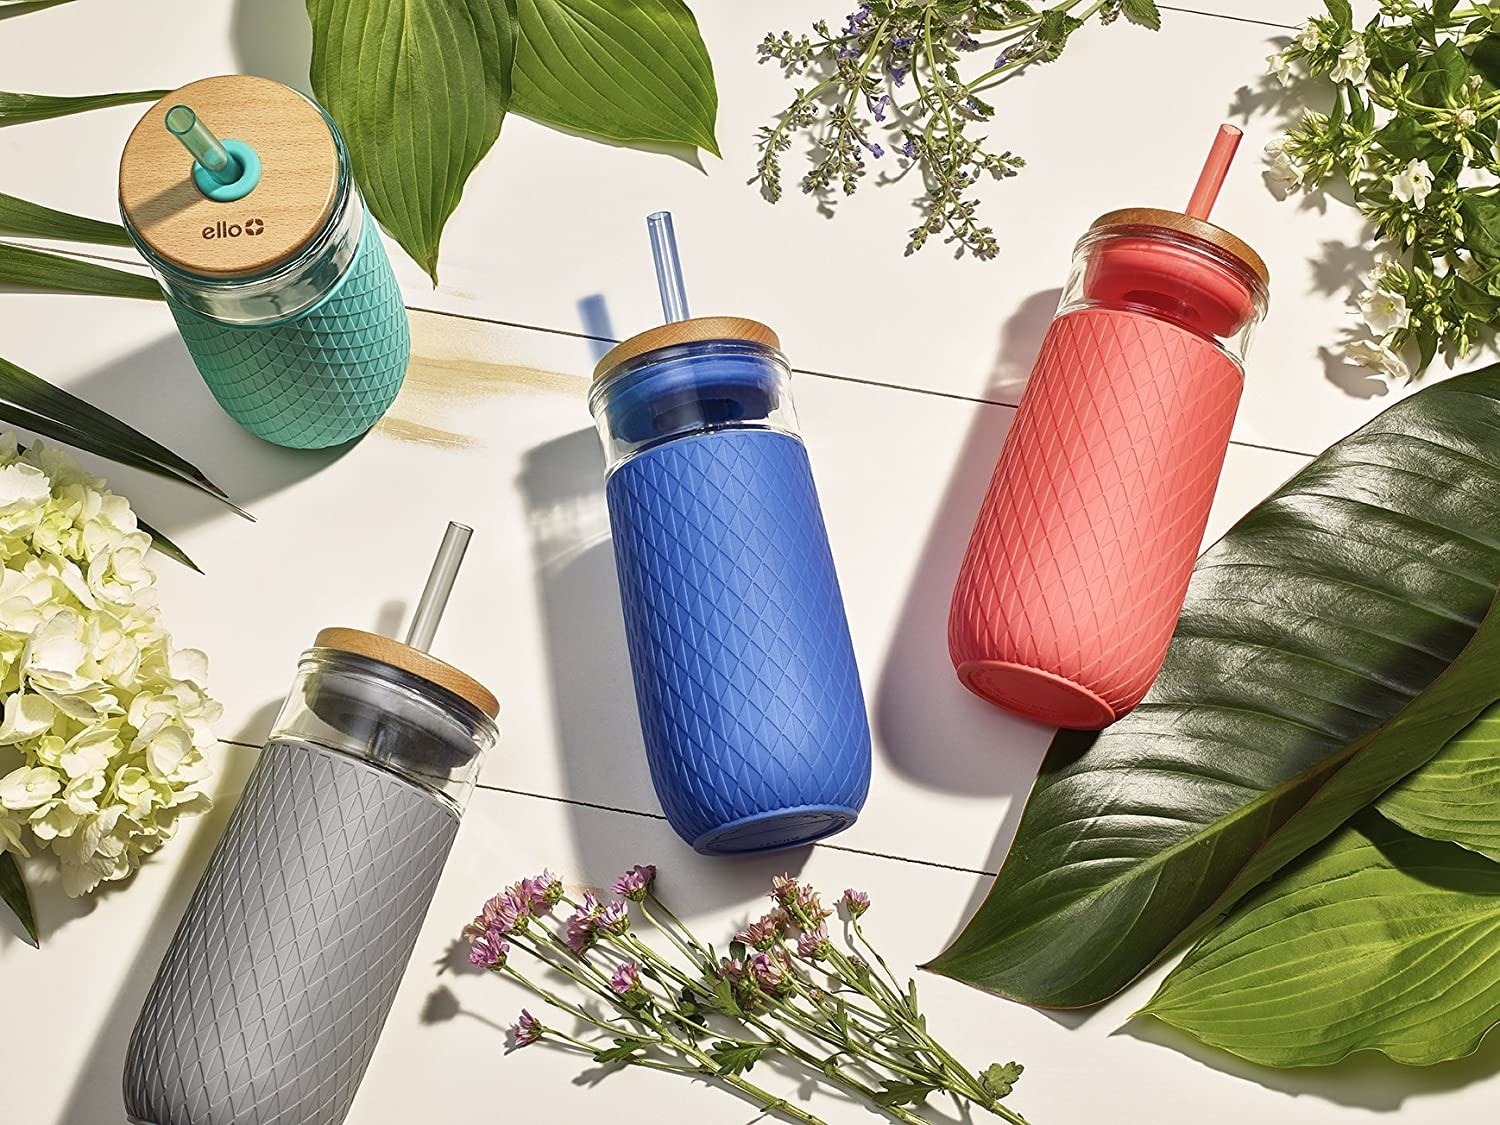 Product photo showing the Ello glass tumbler in gray, teal, blue and coral colors.